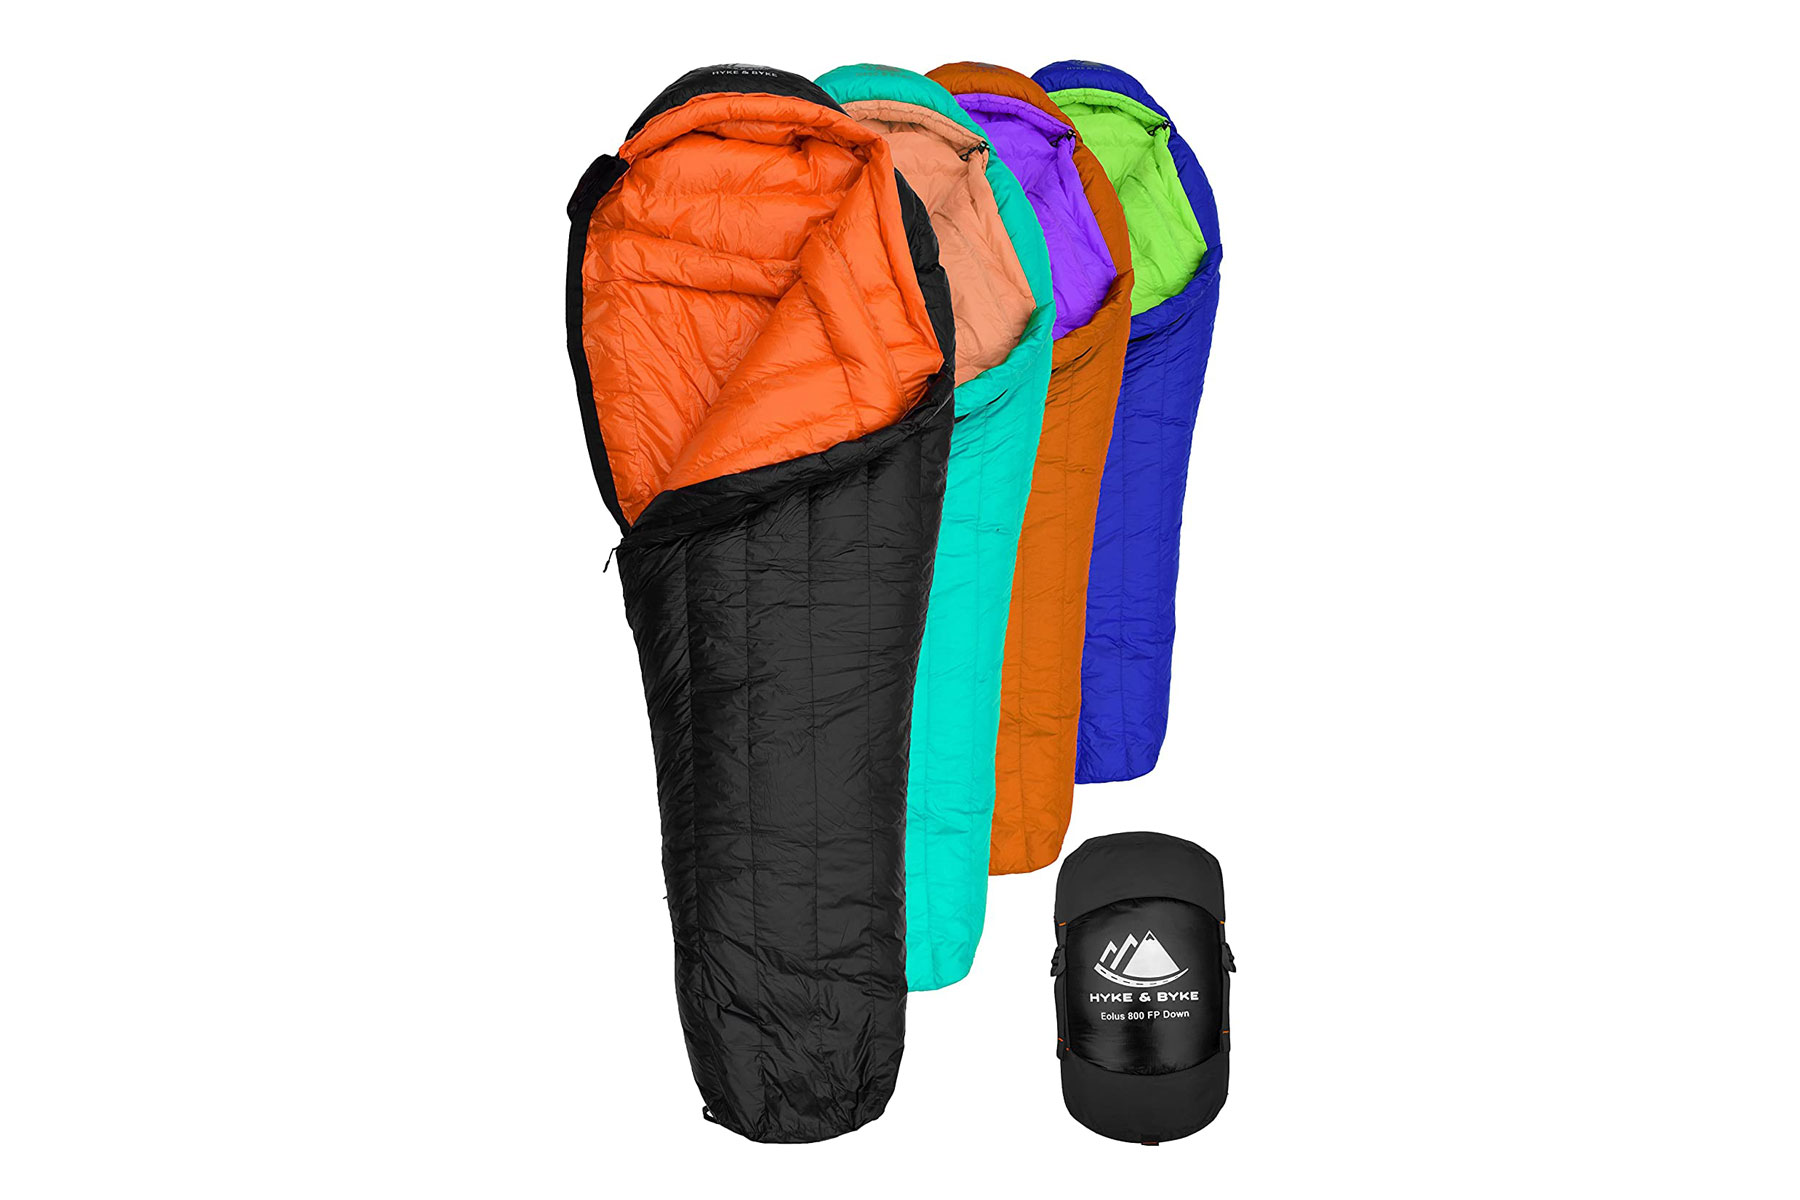 Variety of colorful sleeping bags